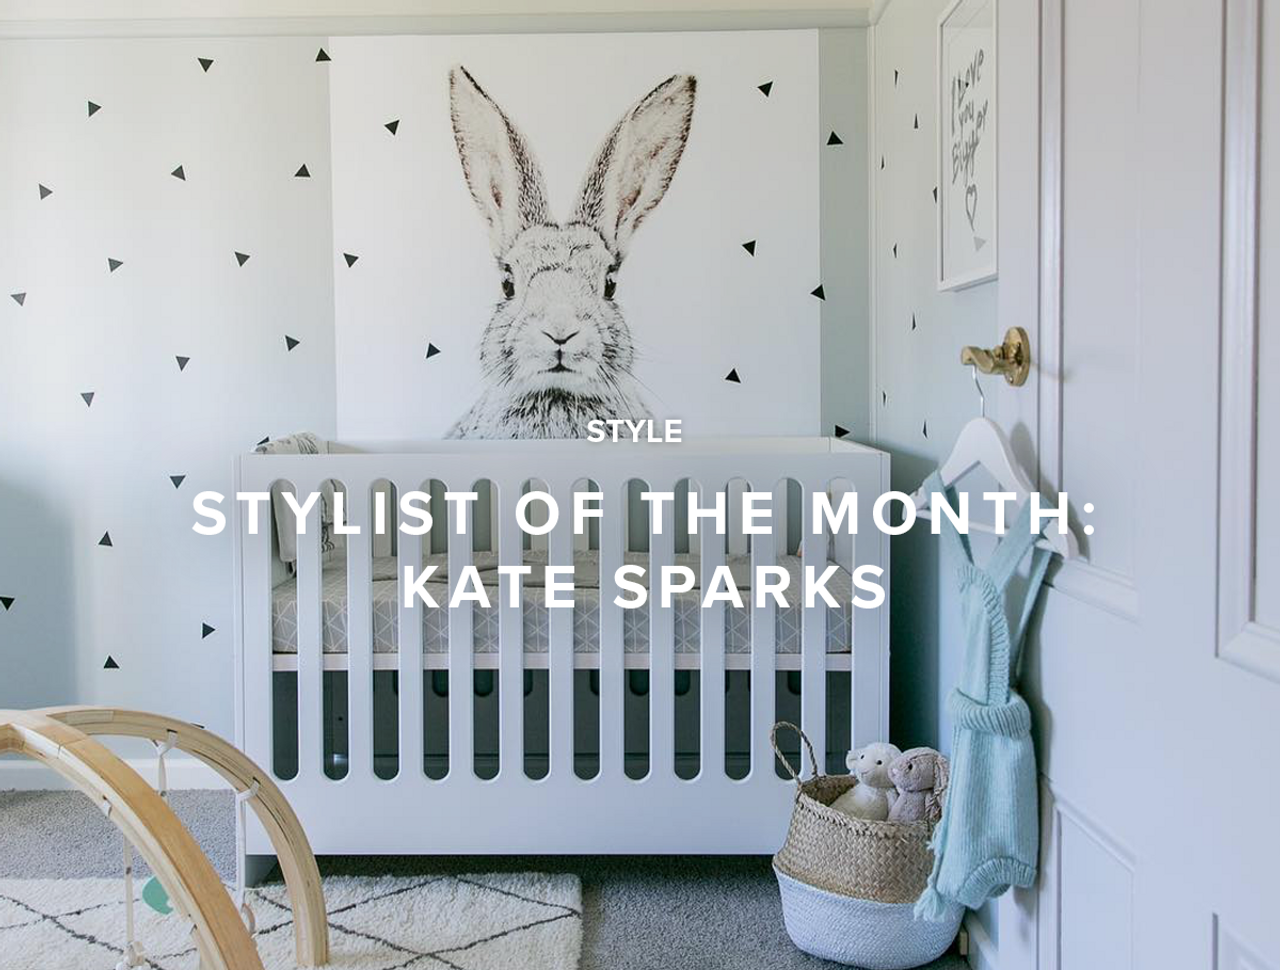 Stylist of the Month – Kate Sparks